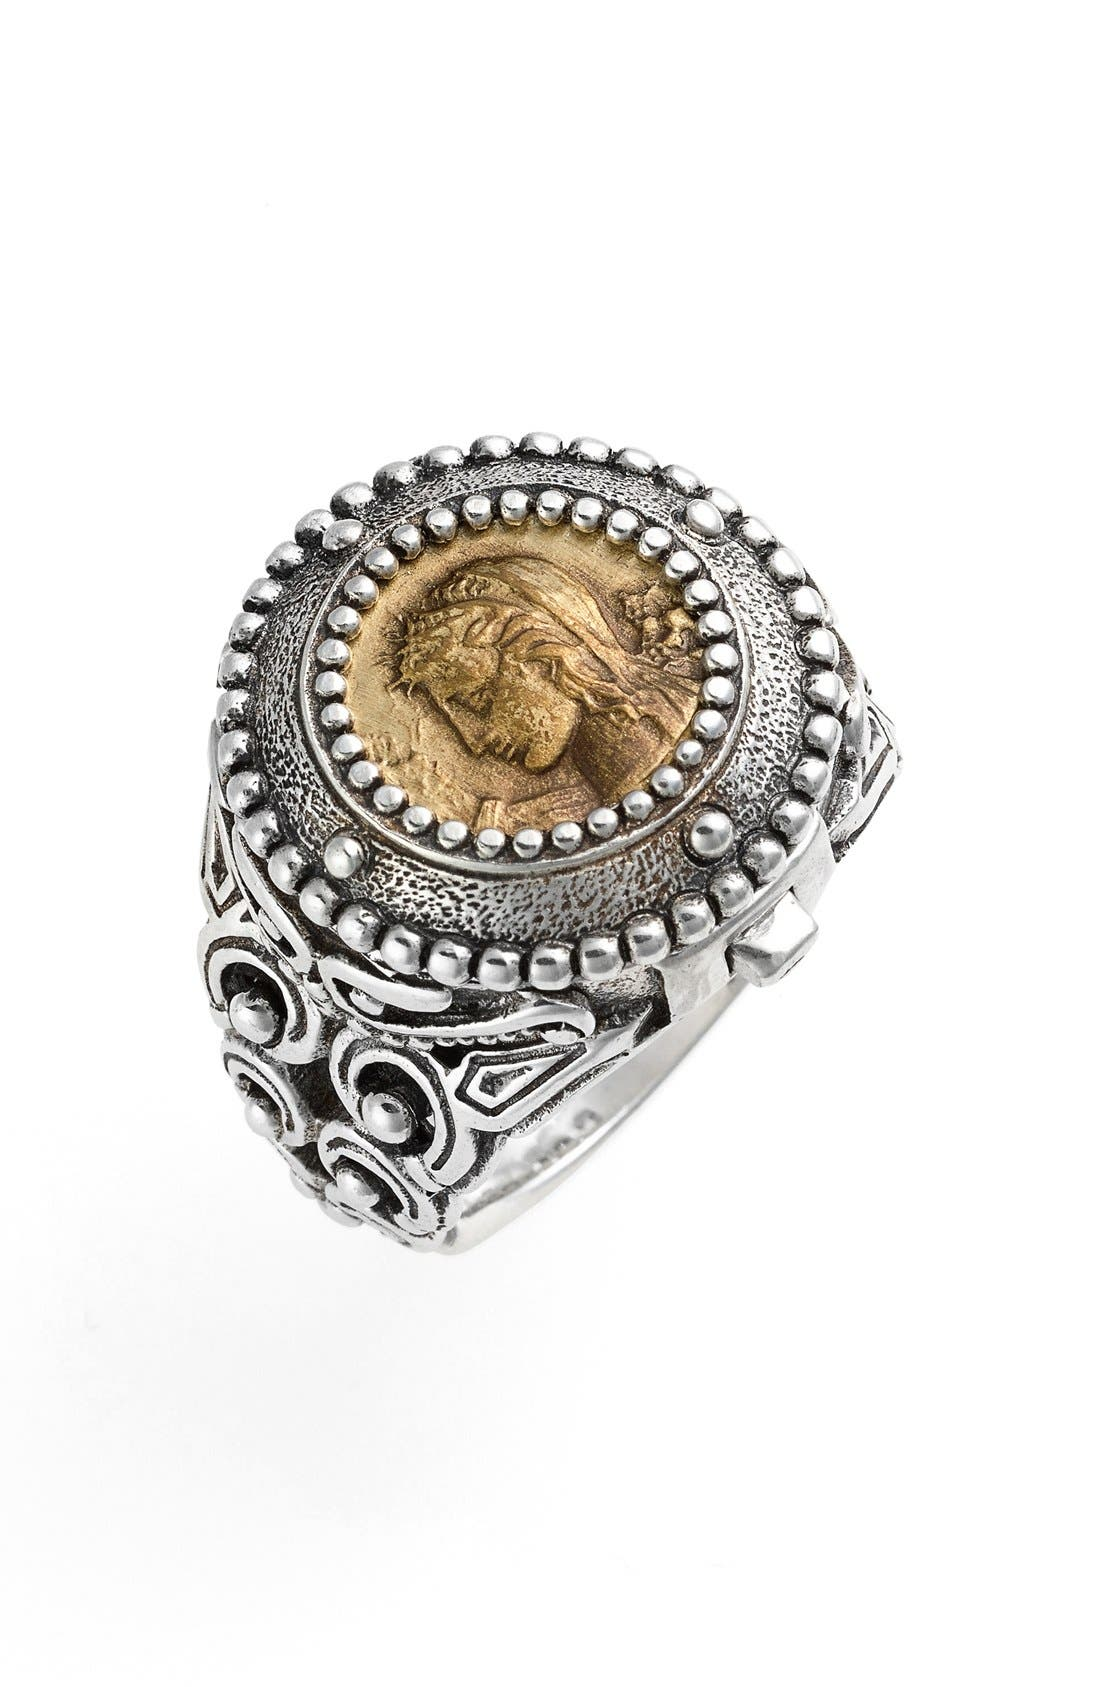 Main Image - Konstantino 'Arethusa' Hinged Coin Ring